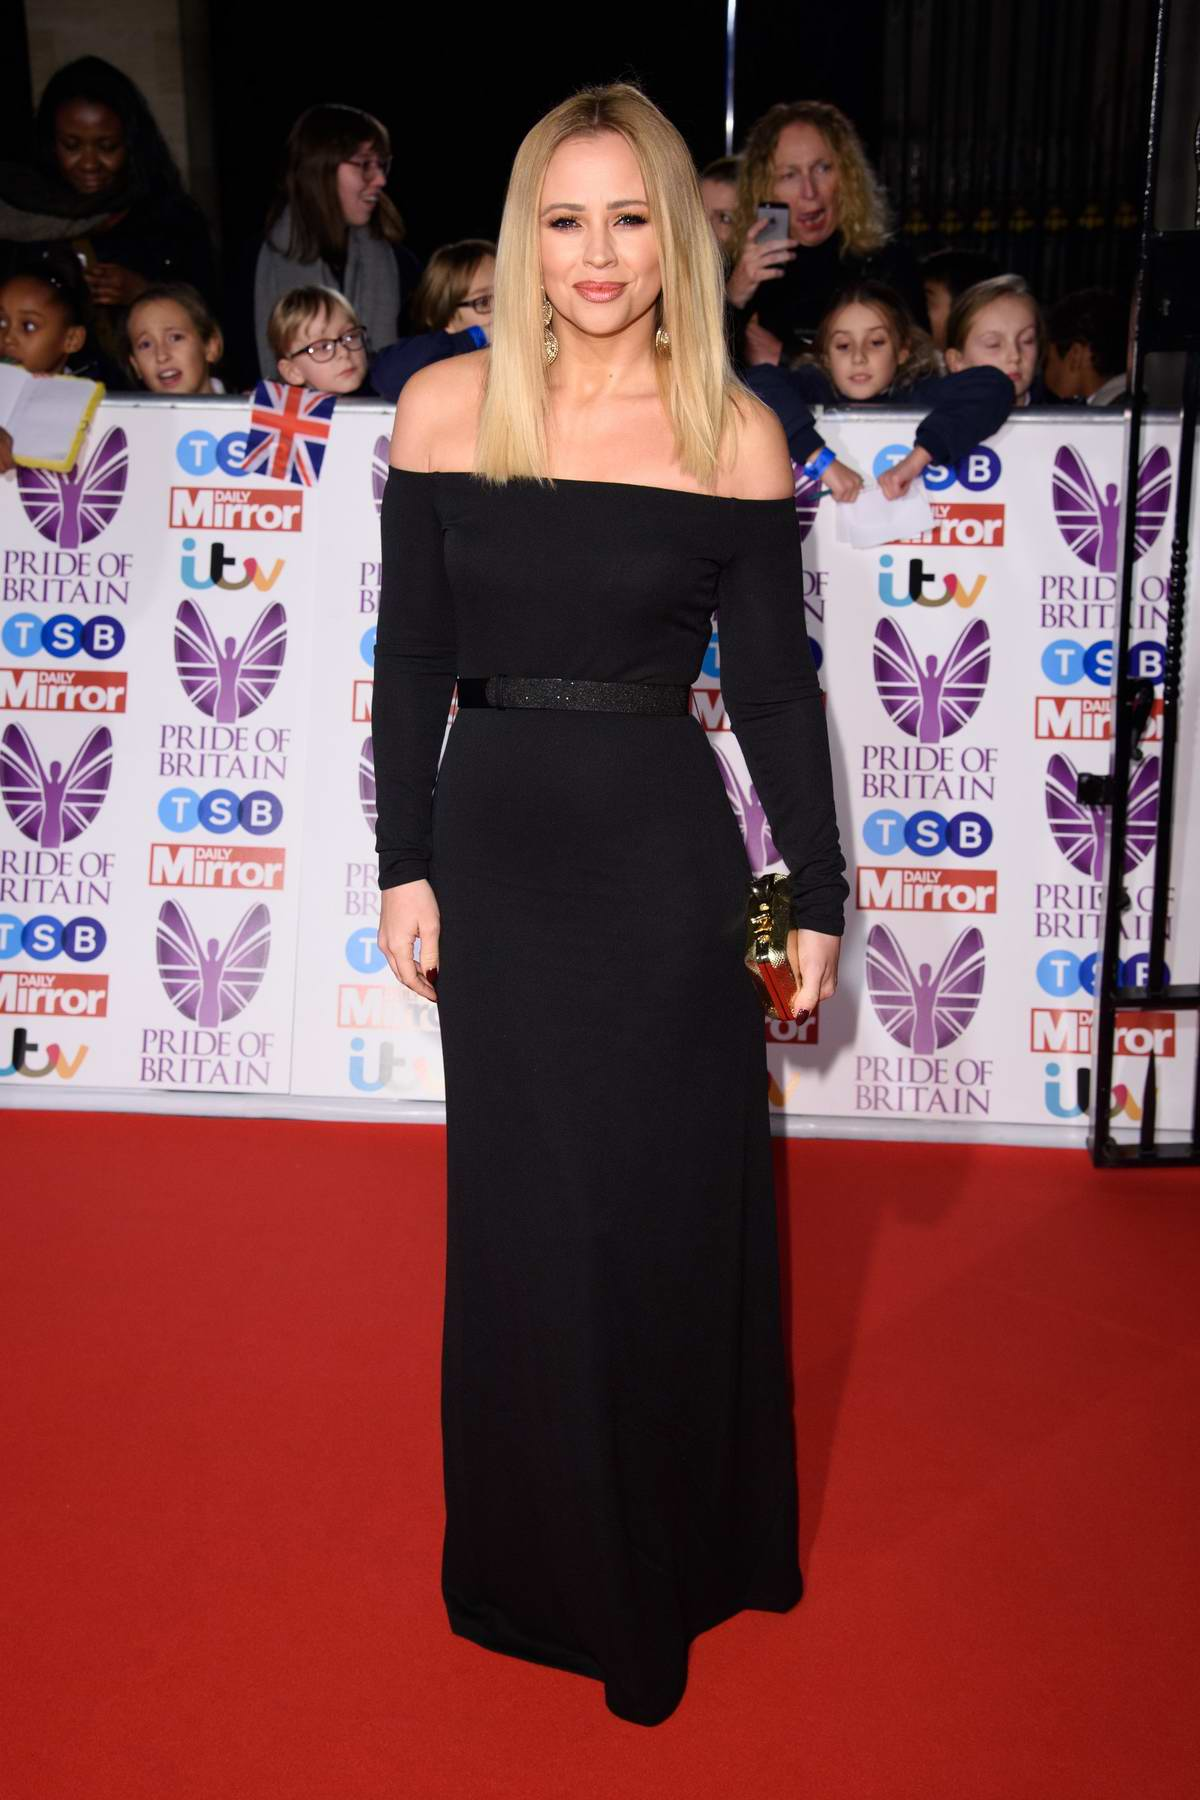 Kimberley Walsh at the Pride of Britain Awards held at the Grosvenor House in London